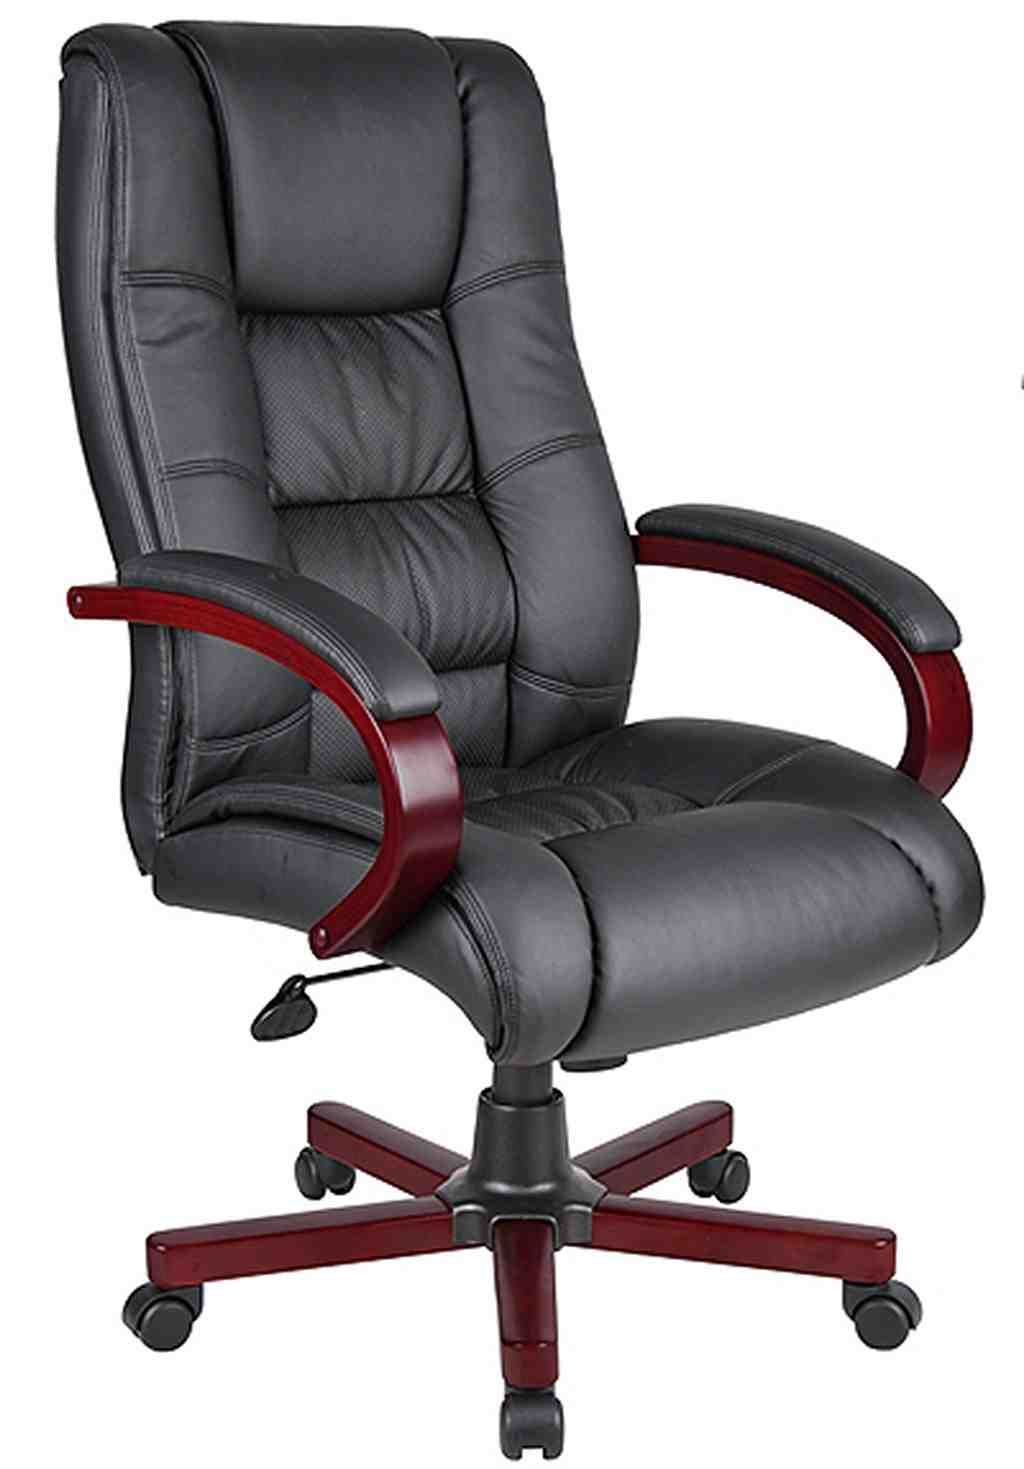 High Back Black Leather Executive Office Chair Office Chair Design Home Office Chairs Leather Office Chair